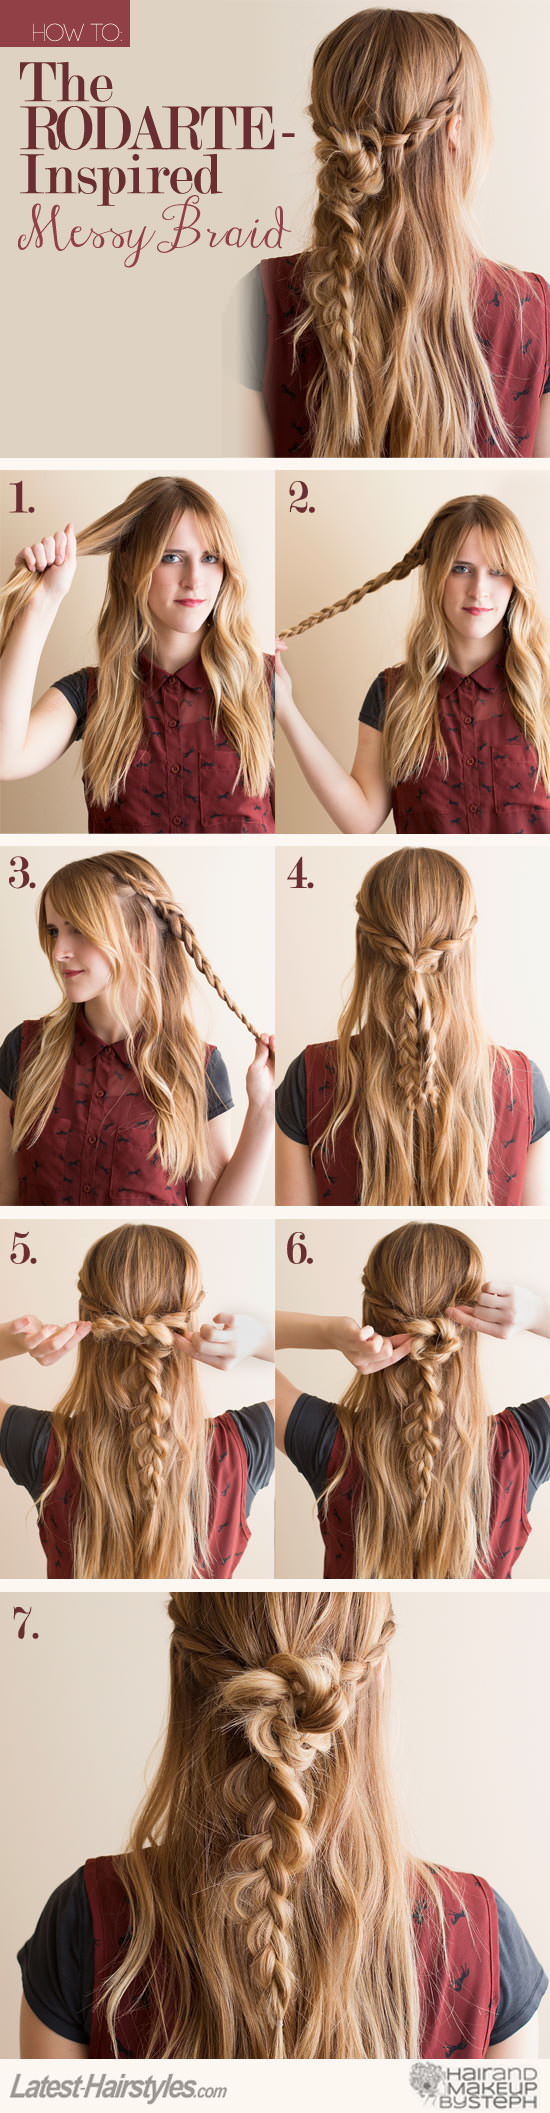 messy braid photo tutorial